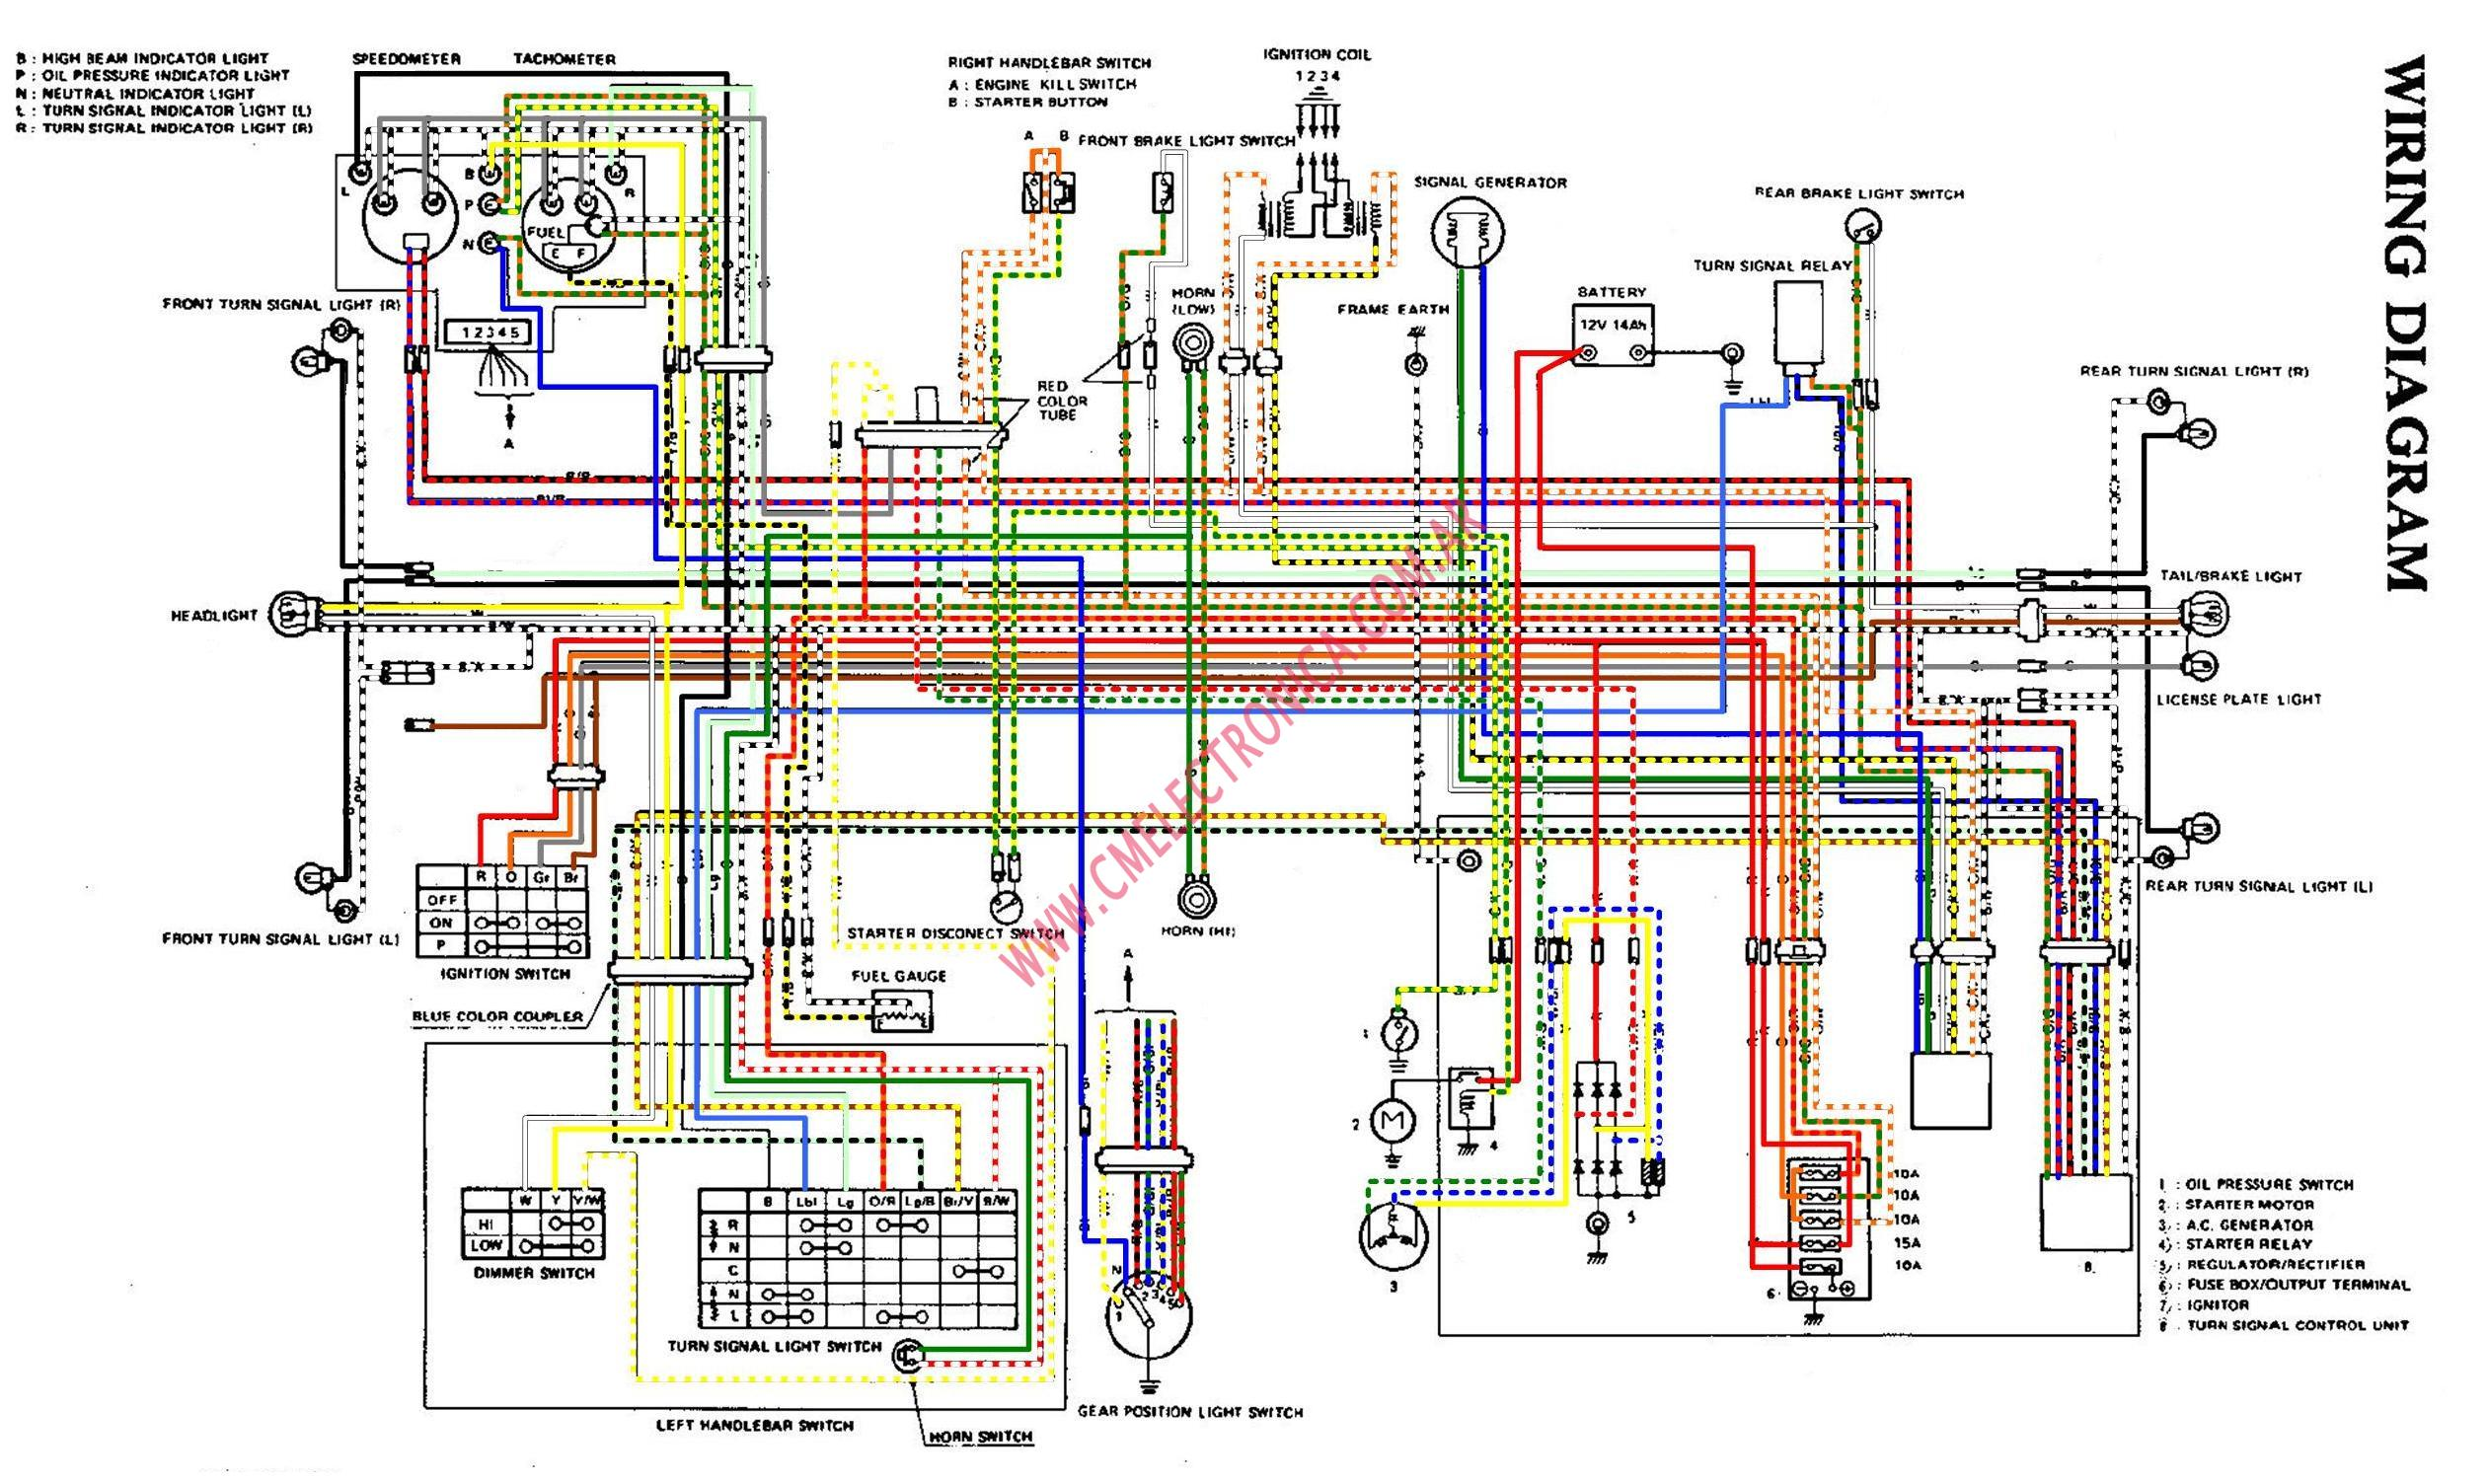 Sv650 Ignition Wiring Getting Ready With Diagram Ford Switch Suzuki Harness 27 Images Starter Electronic